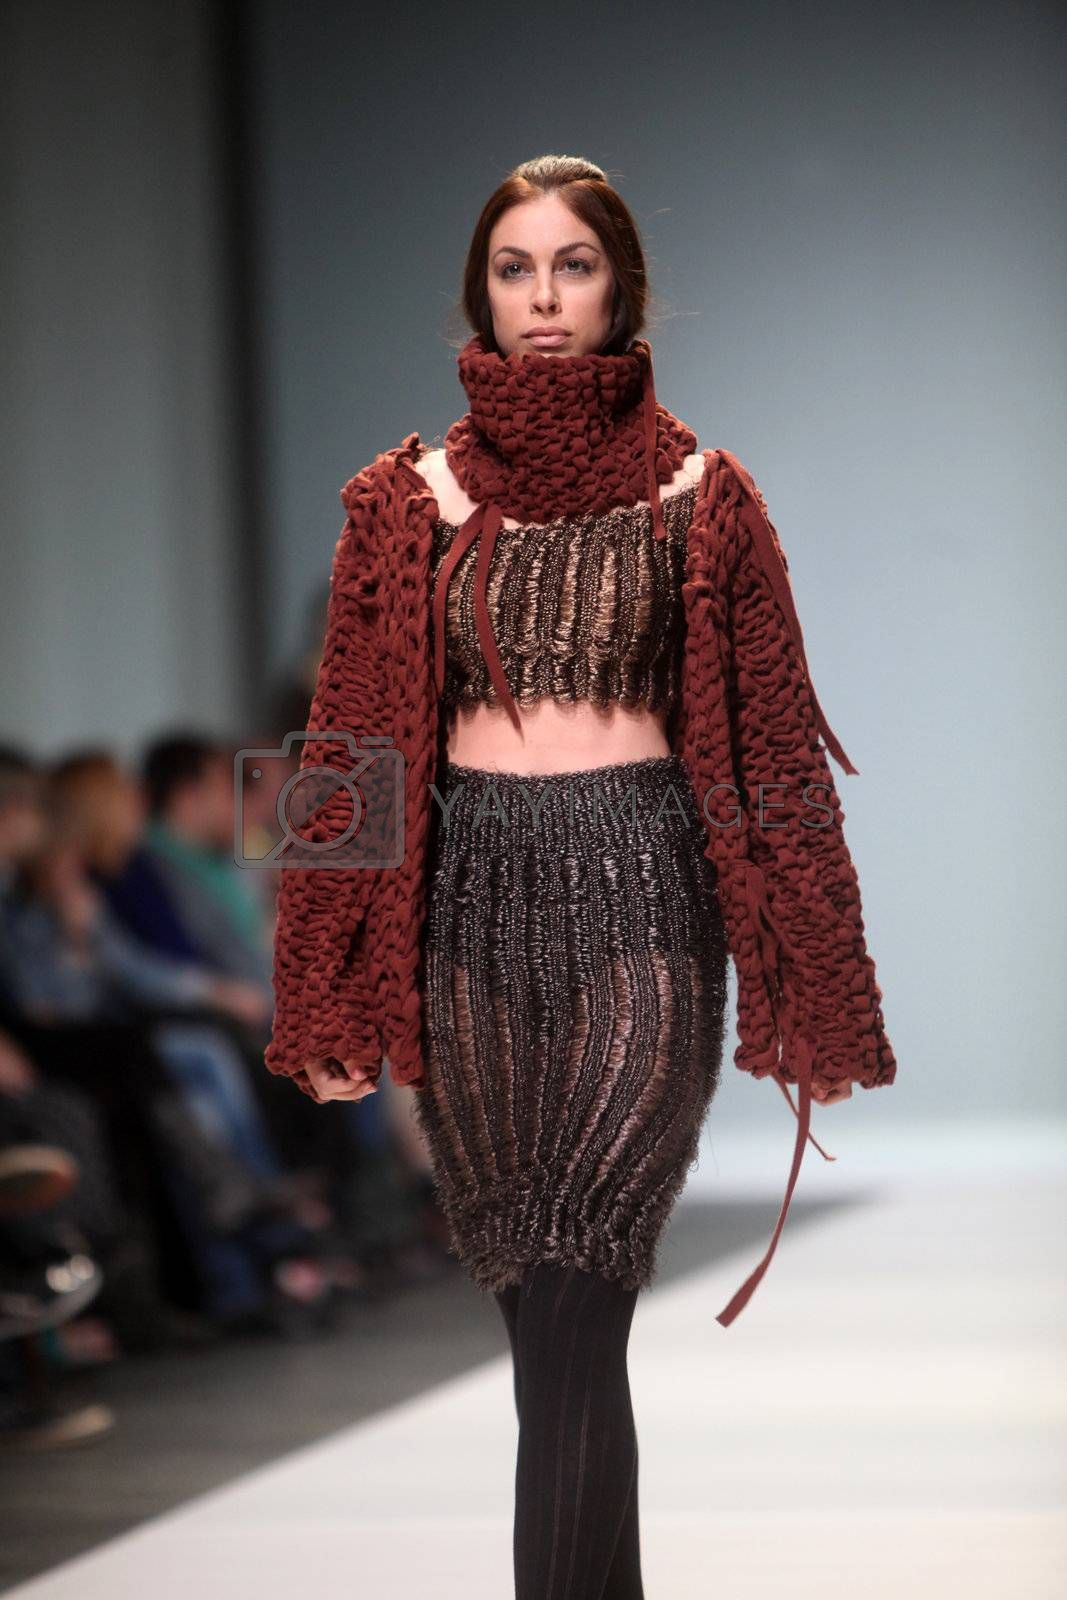 """ZAGREB, CROATIA - May 12: Fashion model wears clothes made by Craig Lawrence on """"ZAGREB FASHION WEEK"""" show on May 12, 2012 in Zagreb, Croatia."""